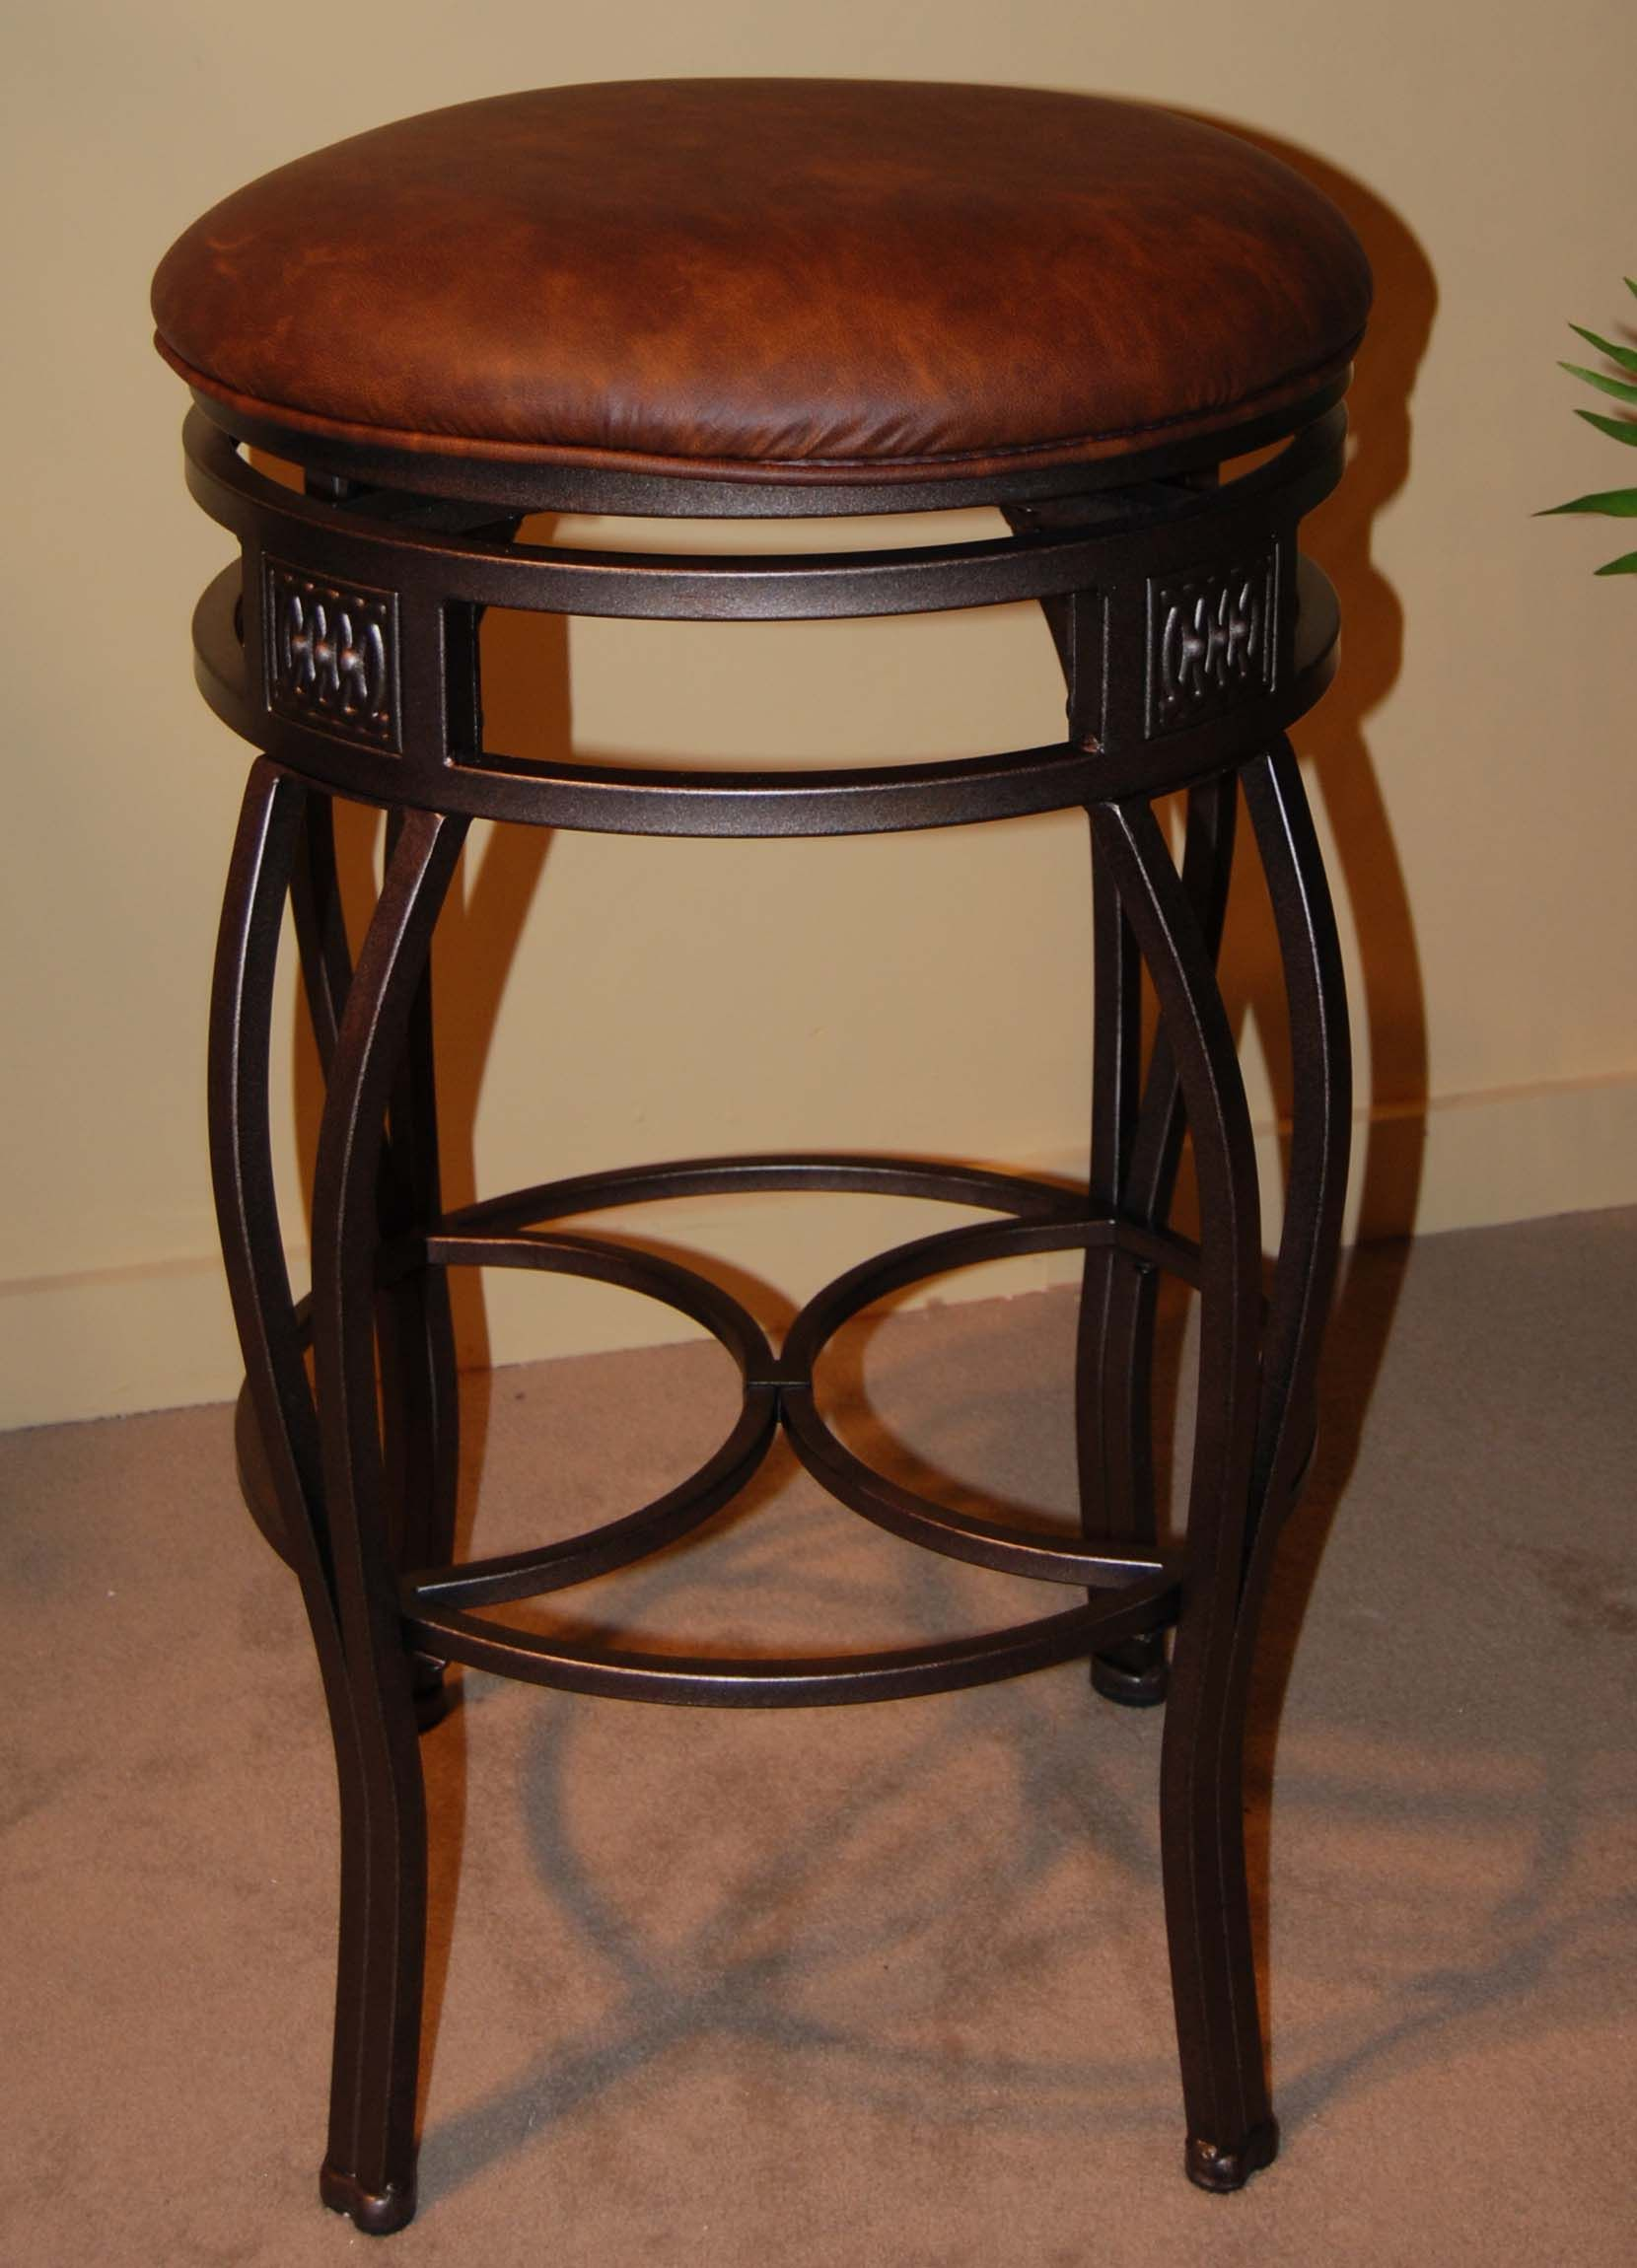 Traditional Backless Bar Stools Http Www Thedomainfairy